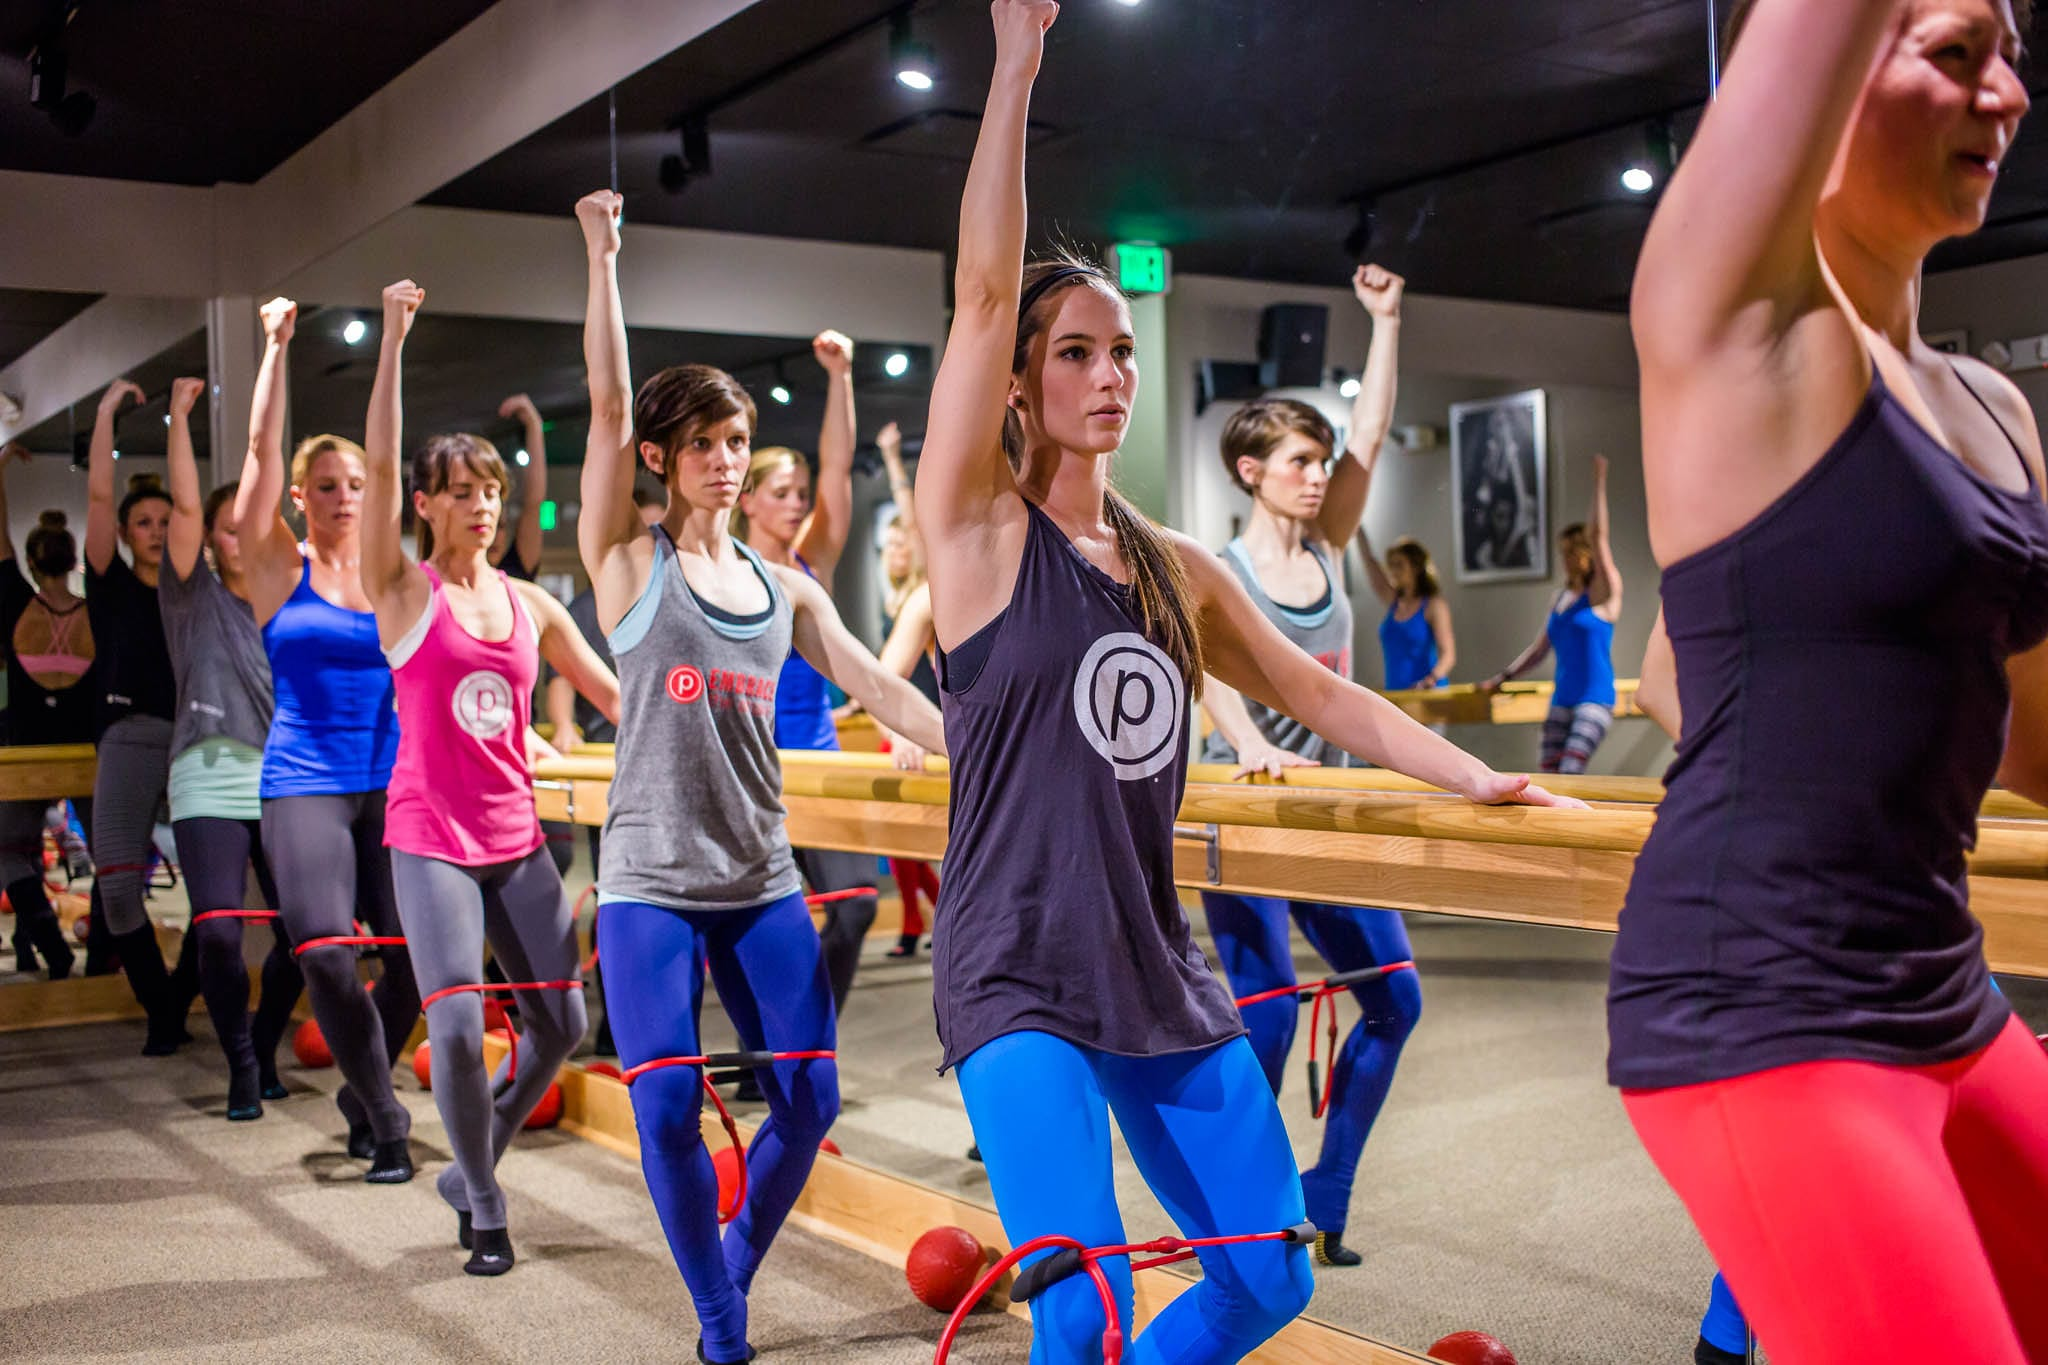 Finding fitness pure barre the current finding fitness is more than just about scoping out the latest fitness trends its about finding exciting new ways to focus on the most important subject fandeluxe Choice Image